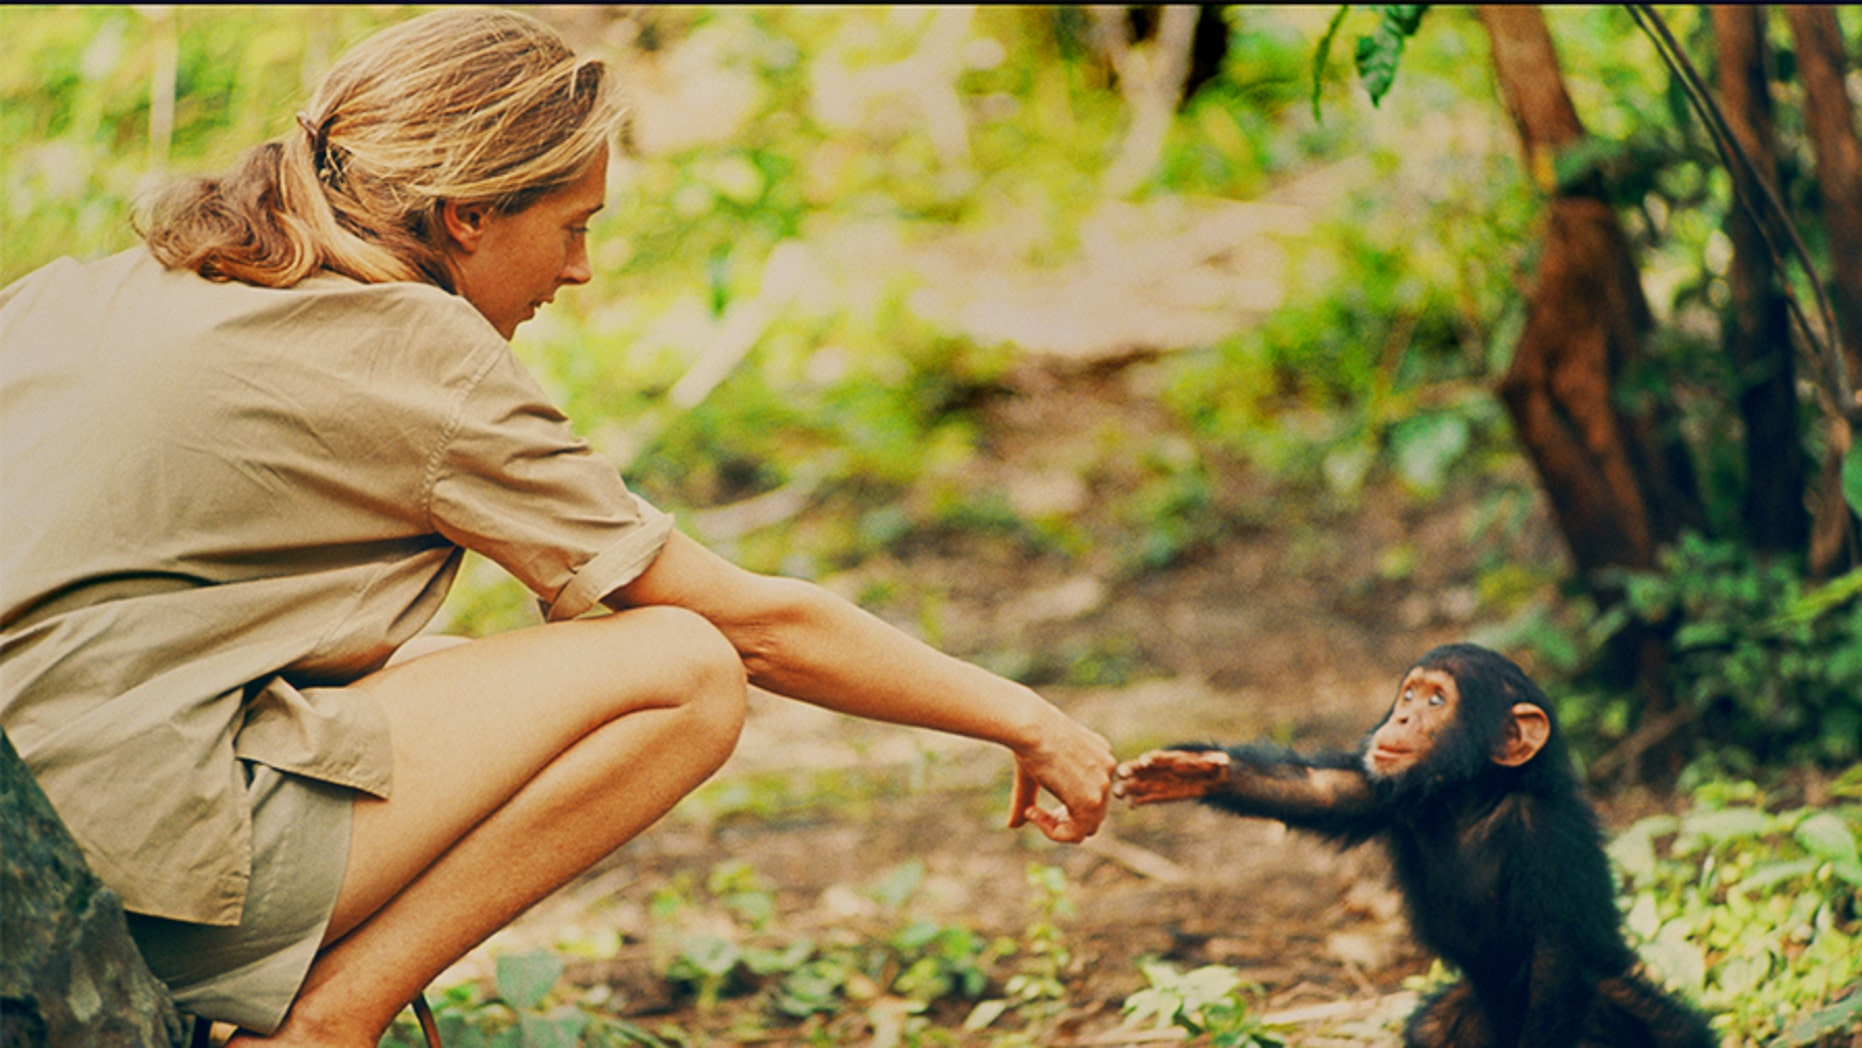 File photo: Gombe, Tanzania - Jane Goodall and infant chimpanzee Flint reach out to touch each other's hands. (National Geographic Creative/ Hugo van Lawick)